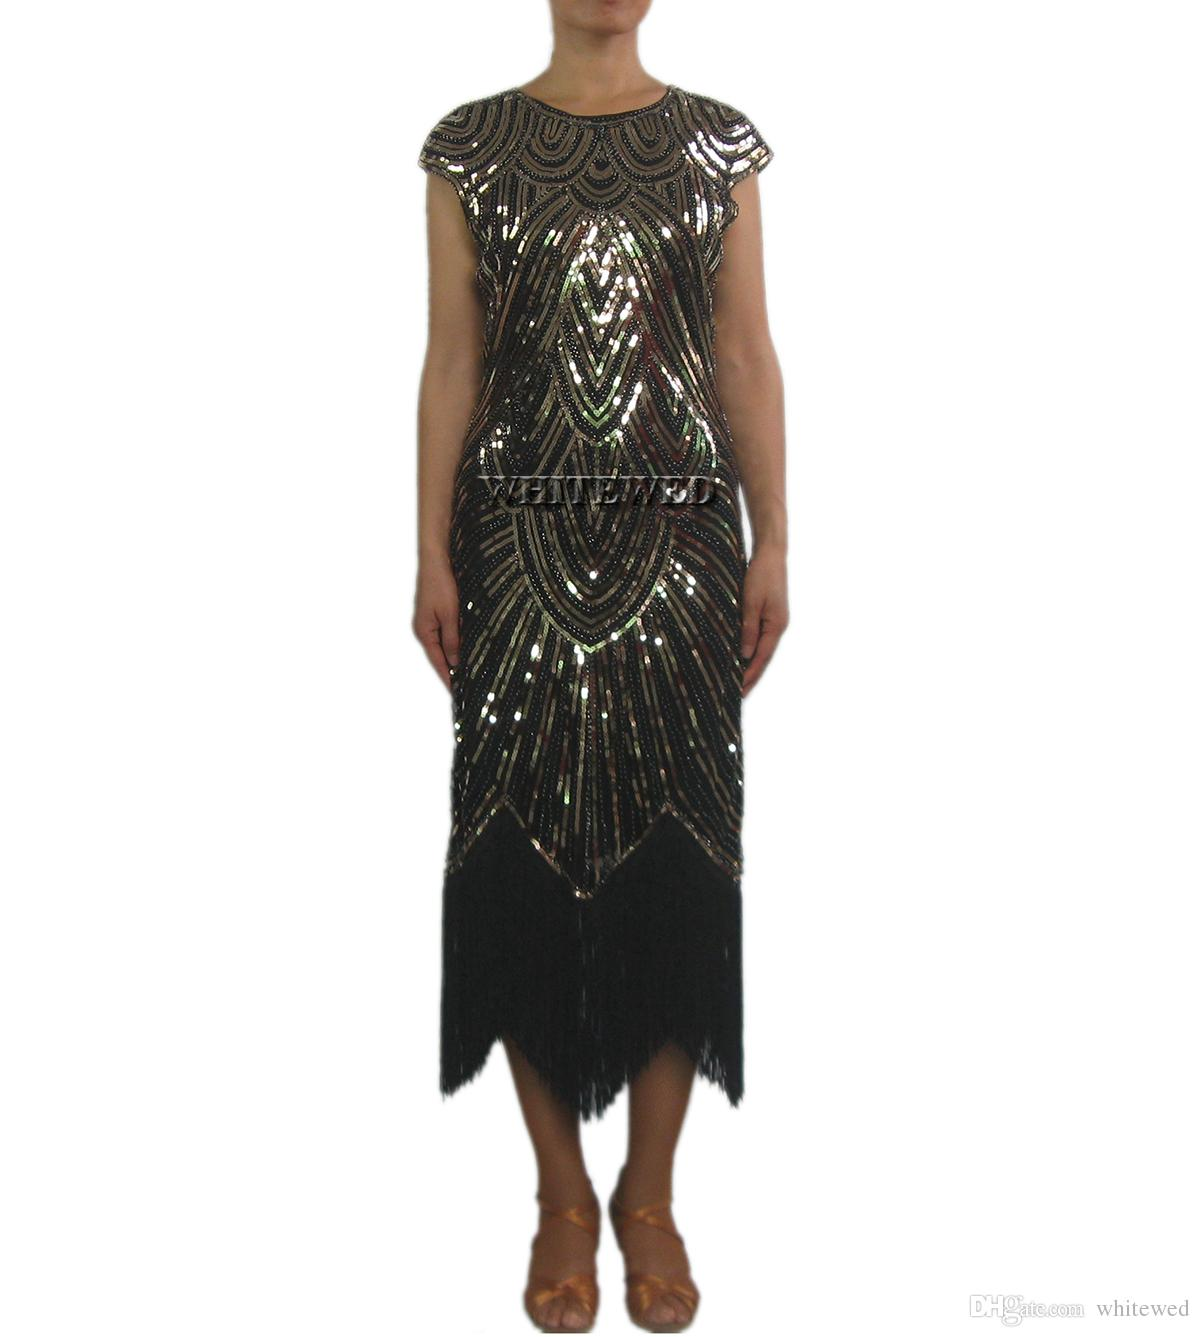 Art Deco Stil Retro Perlen 1920 Art Deco Cocktail Flapper Kleider Kostüm Lange Jazz Ära Flappers Great Gatsby Kostüm Kleid Stil In 1920 Frauen